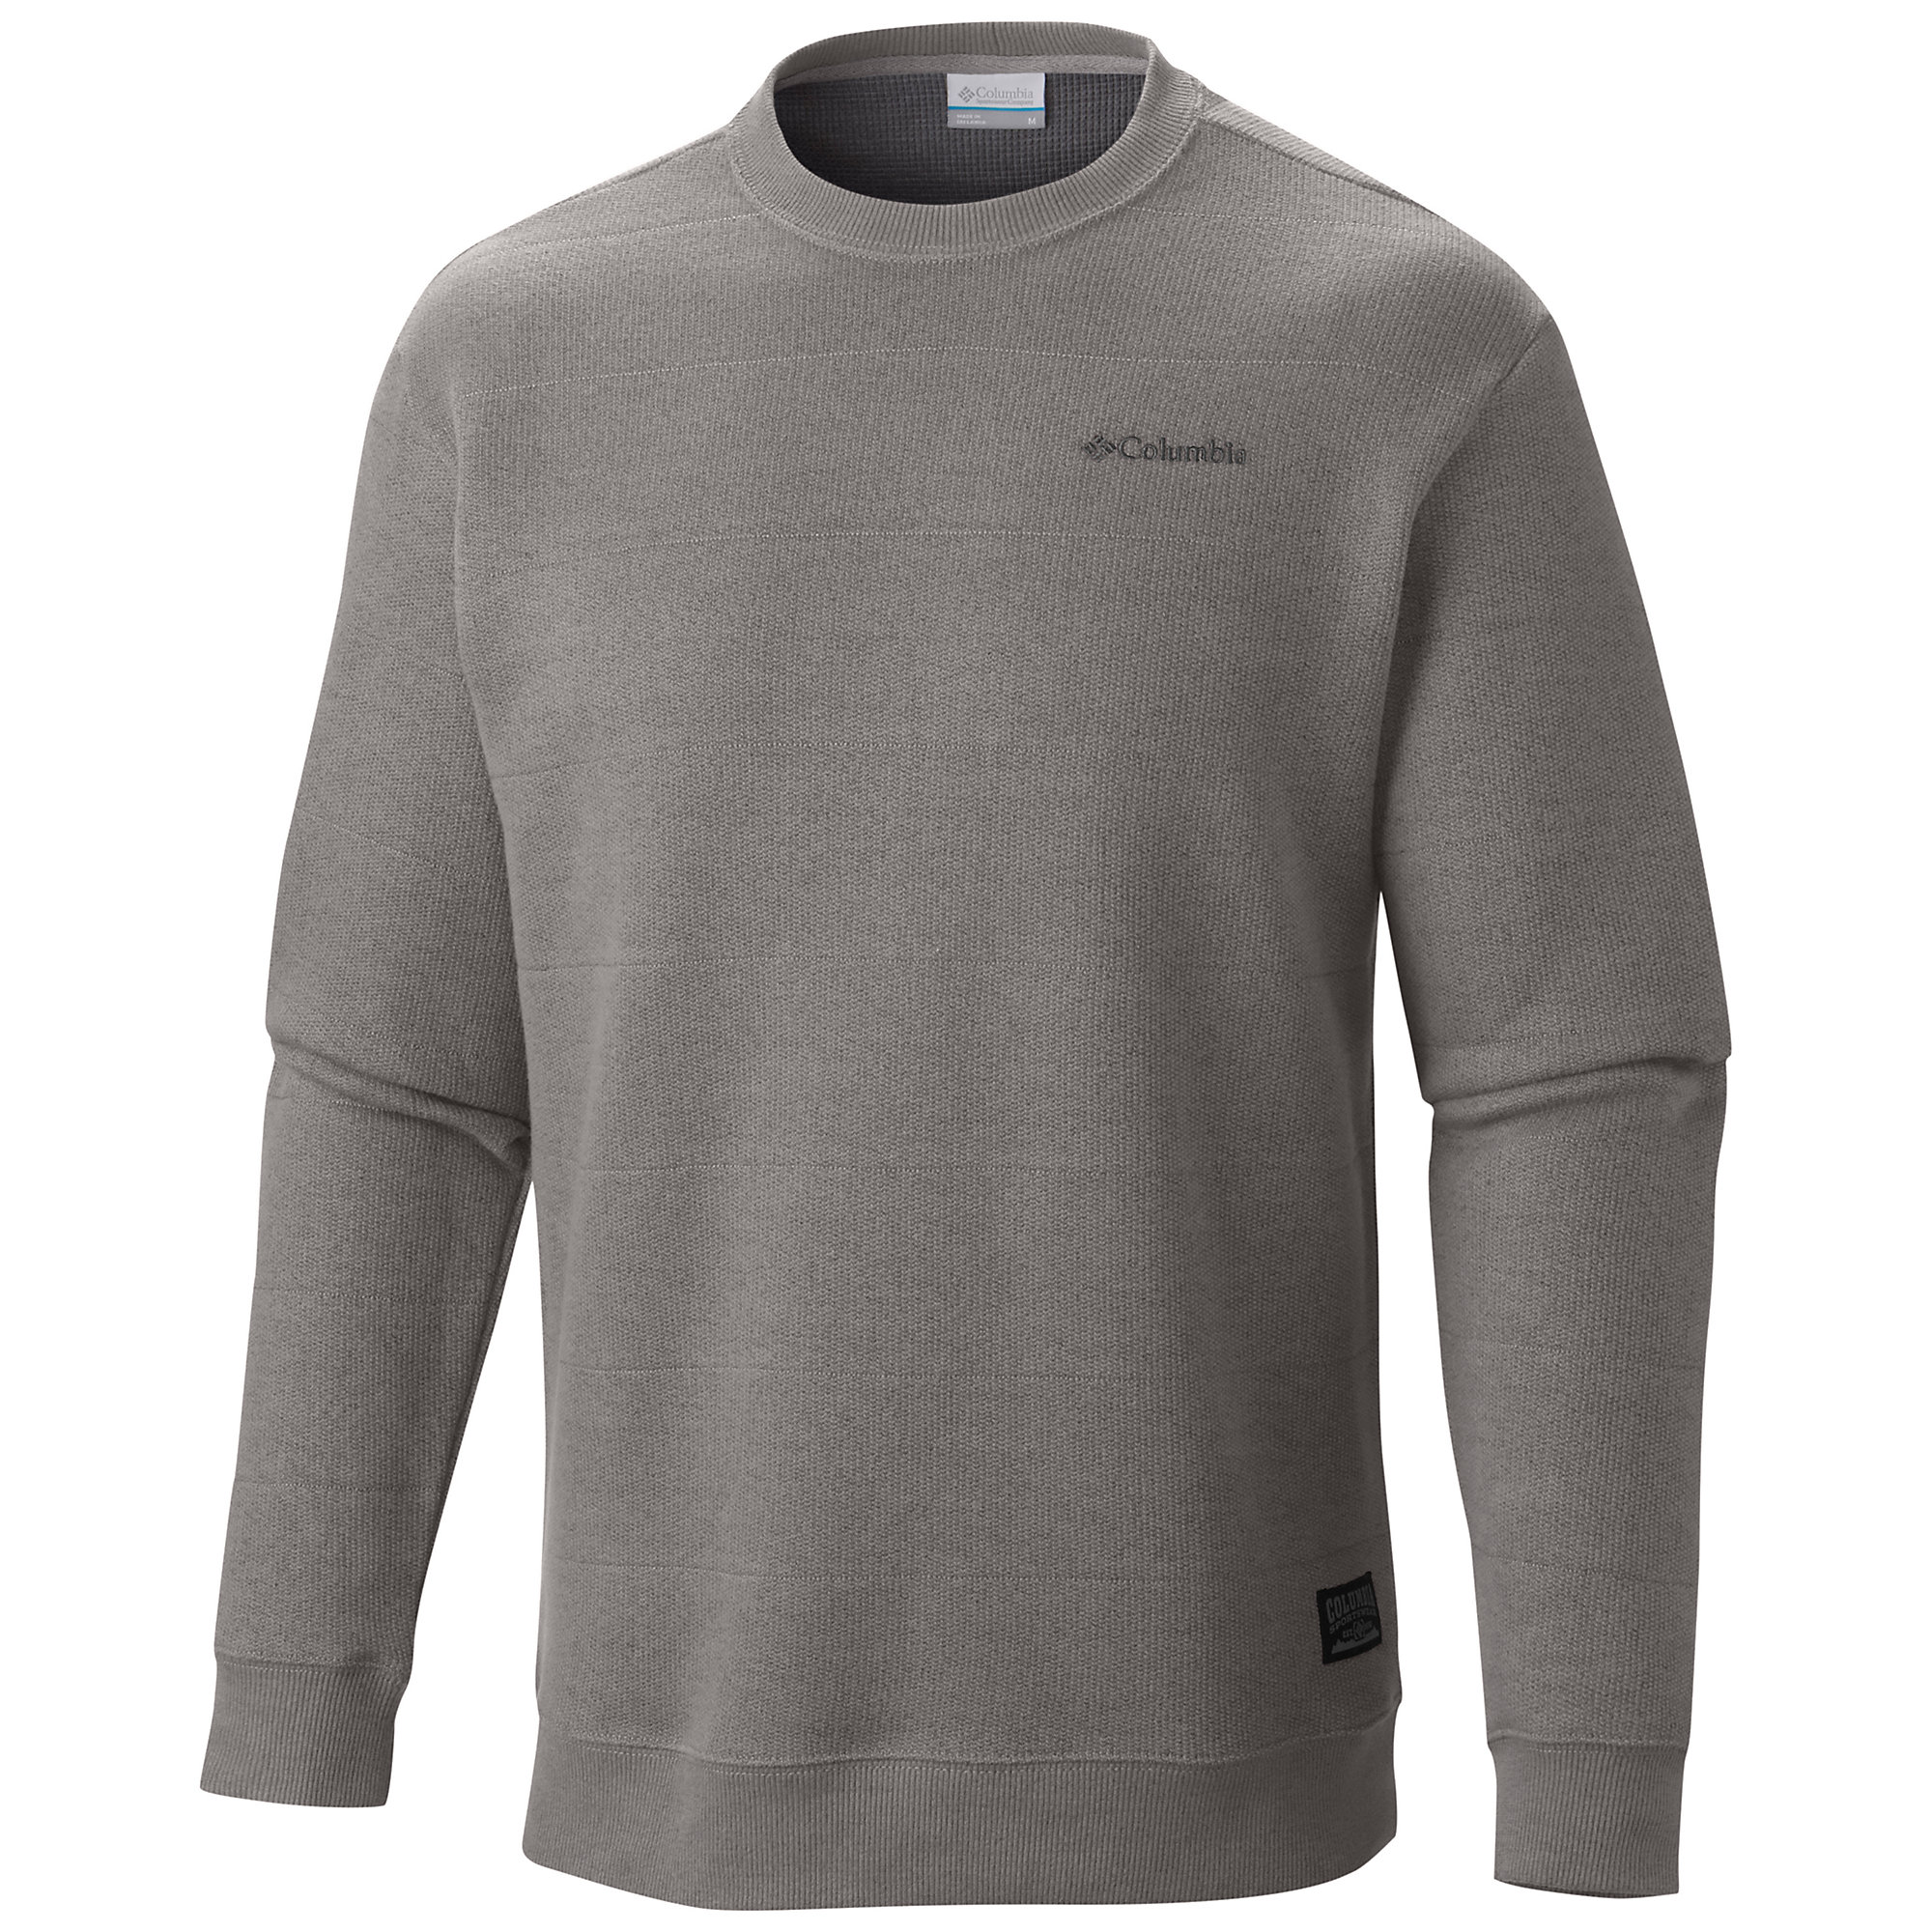 Columbia Great Hart Mountain Crew Fleece Sweatshirt